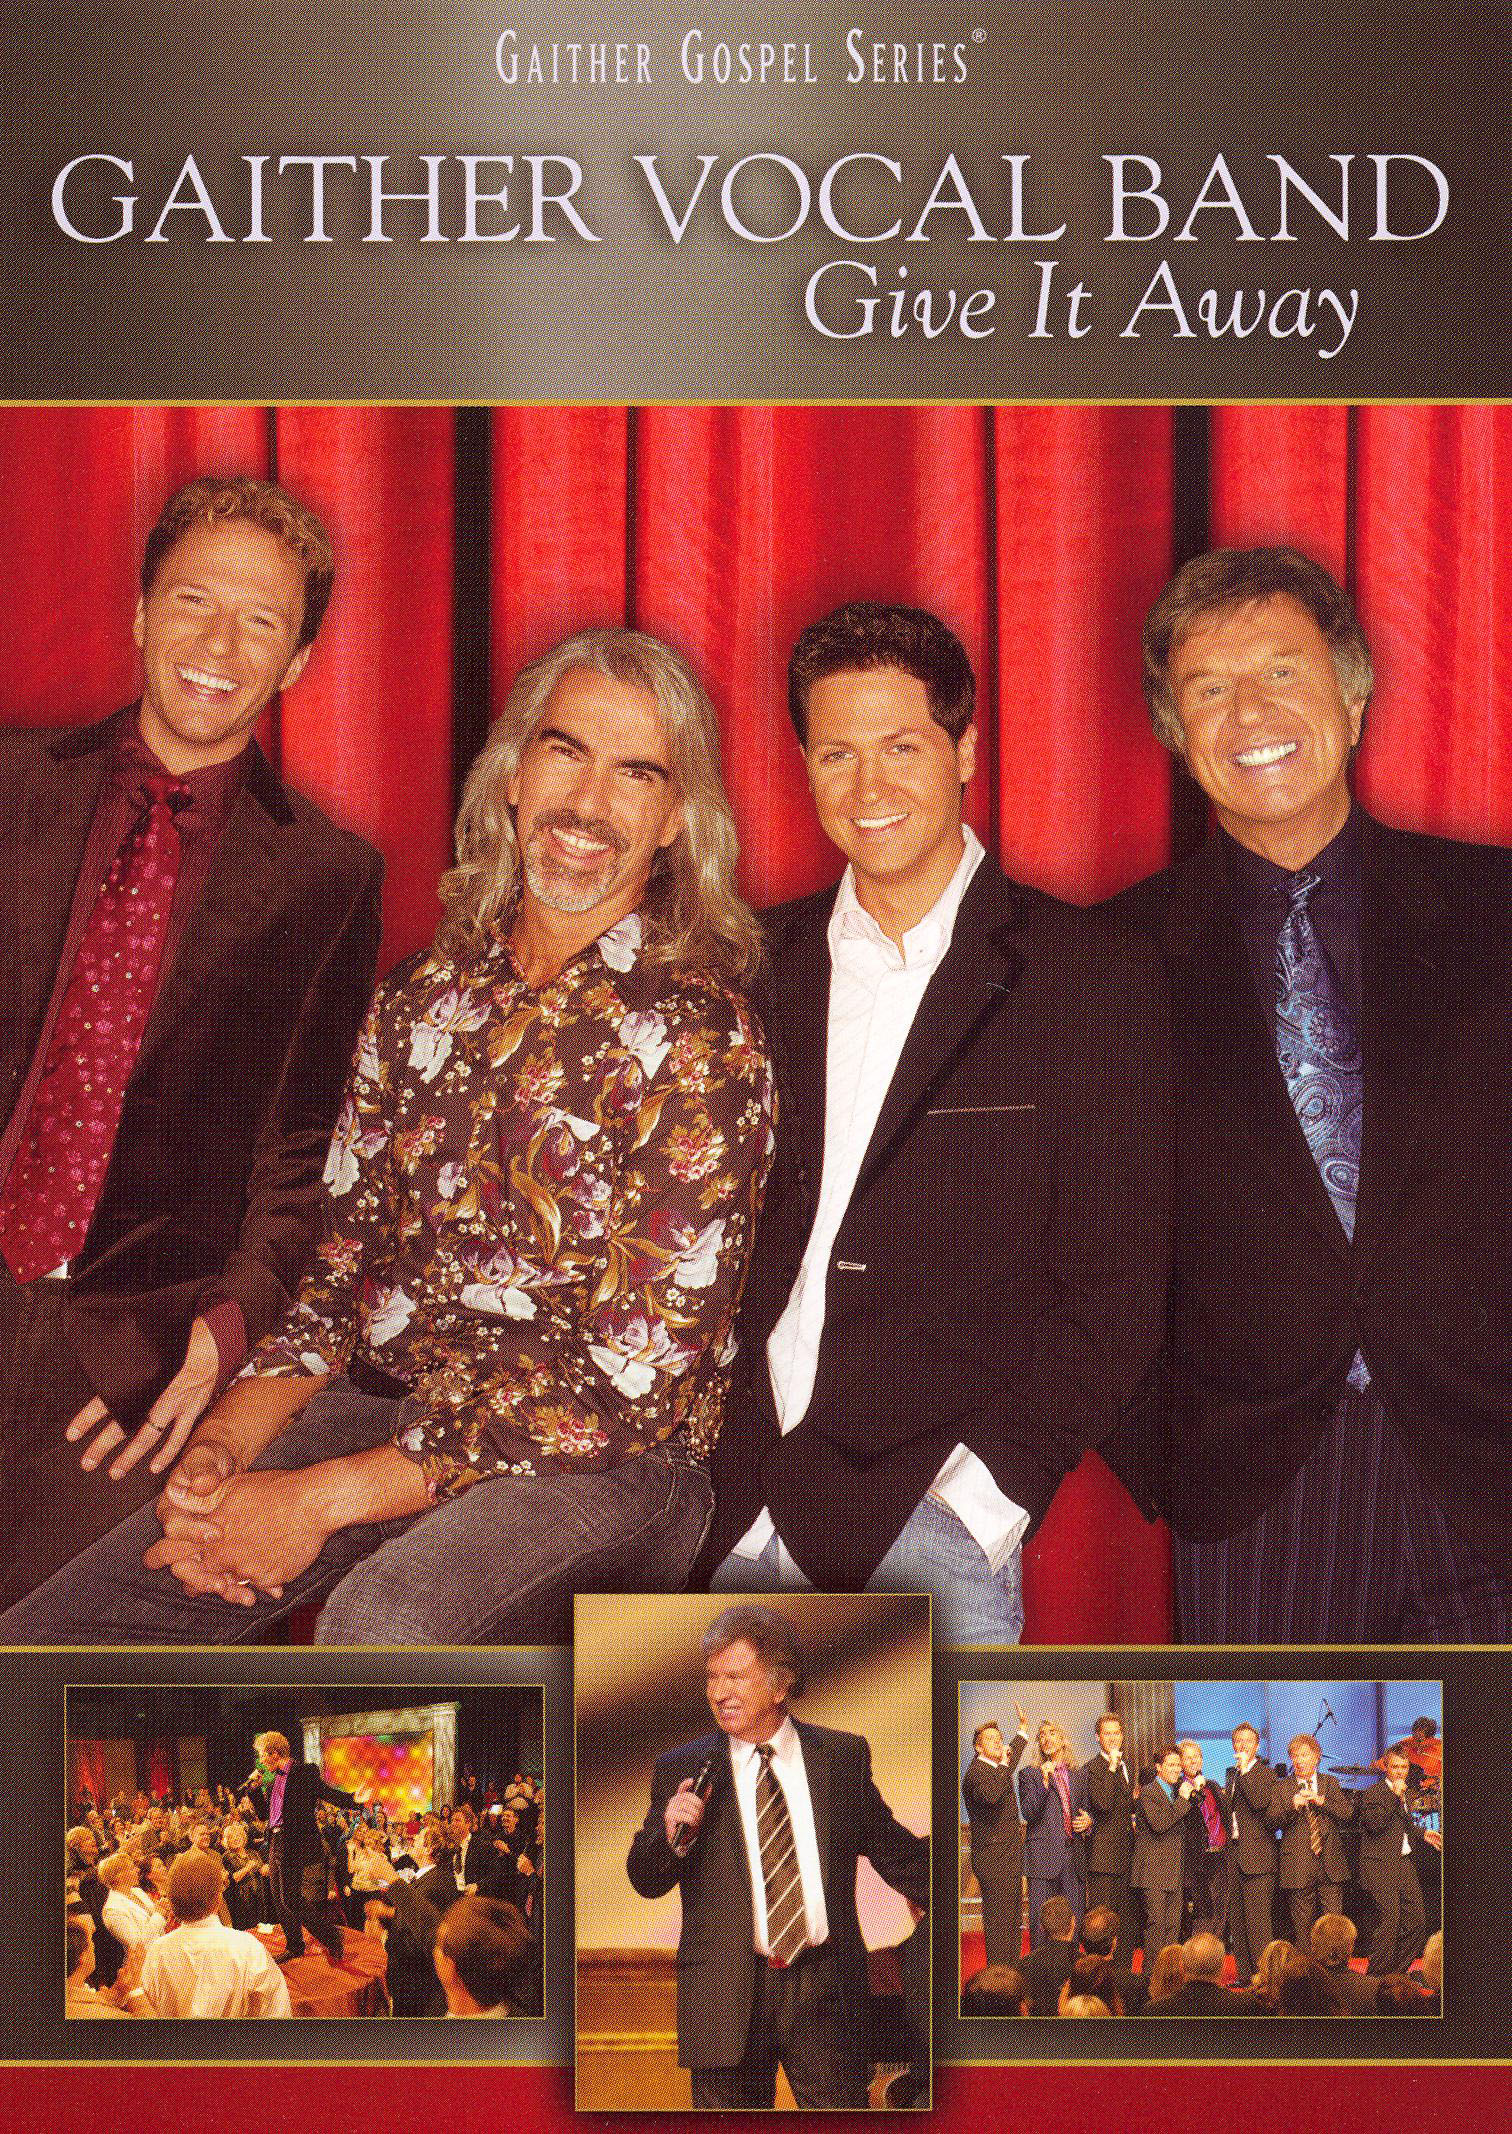 The Gaither Vocal Band: Give It Away